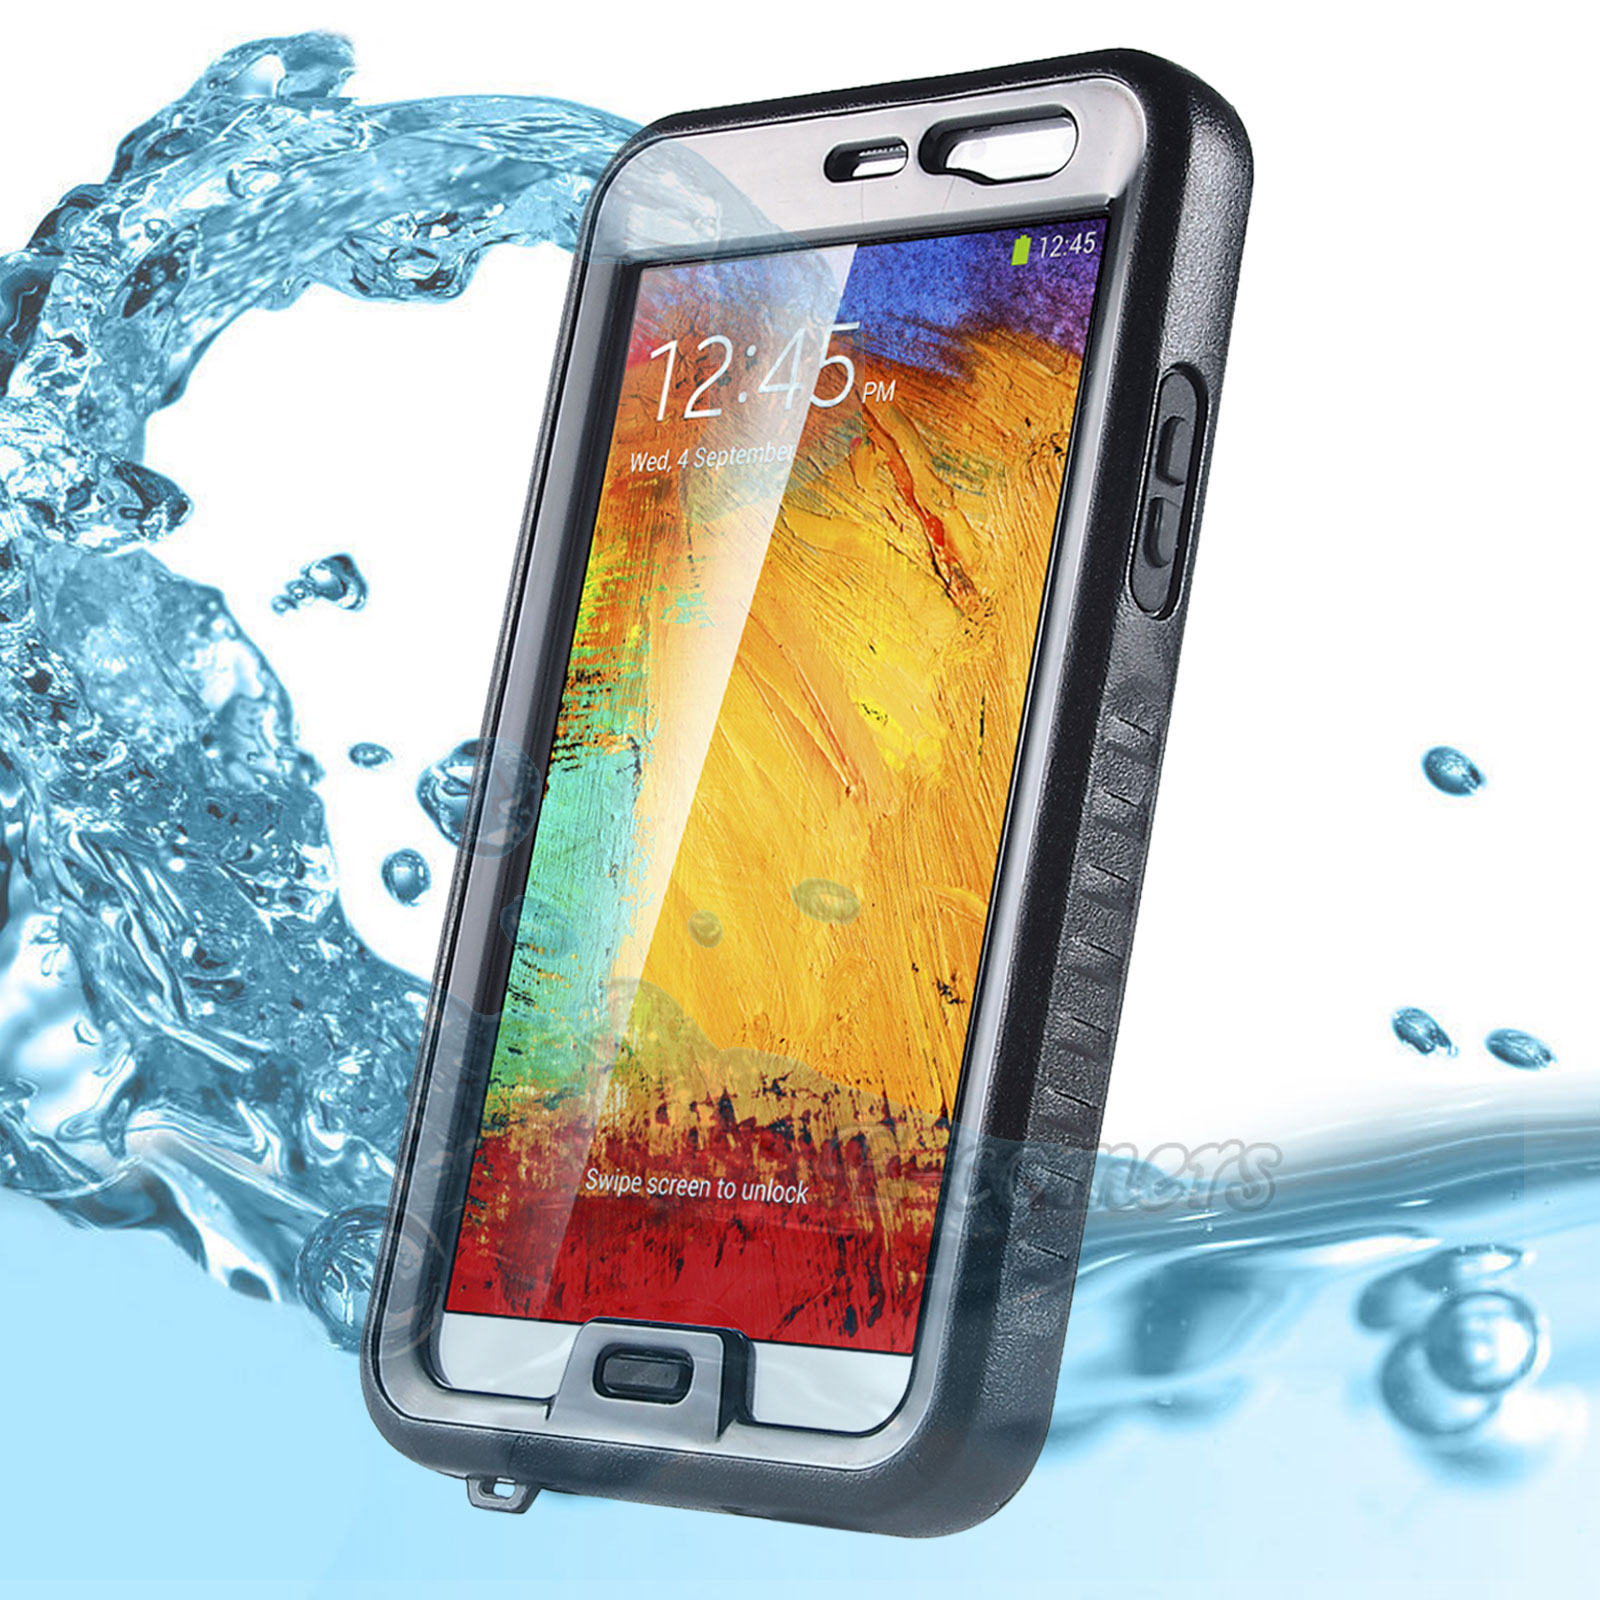 Note 3 Case, Galaxy Note 3 Waterproof Case - ULAK Galaxy Note 3 Dustproof Shockproof Hard Armor Protective Cover Case Case for Samsung Galaxy Note 3 Note iii N9000